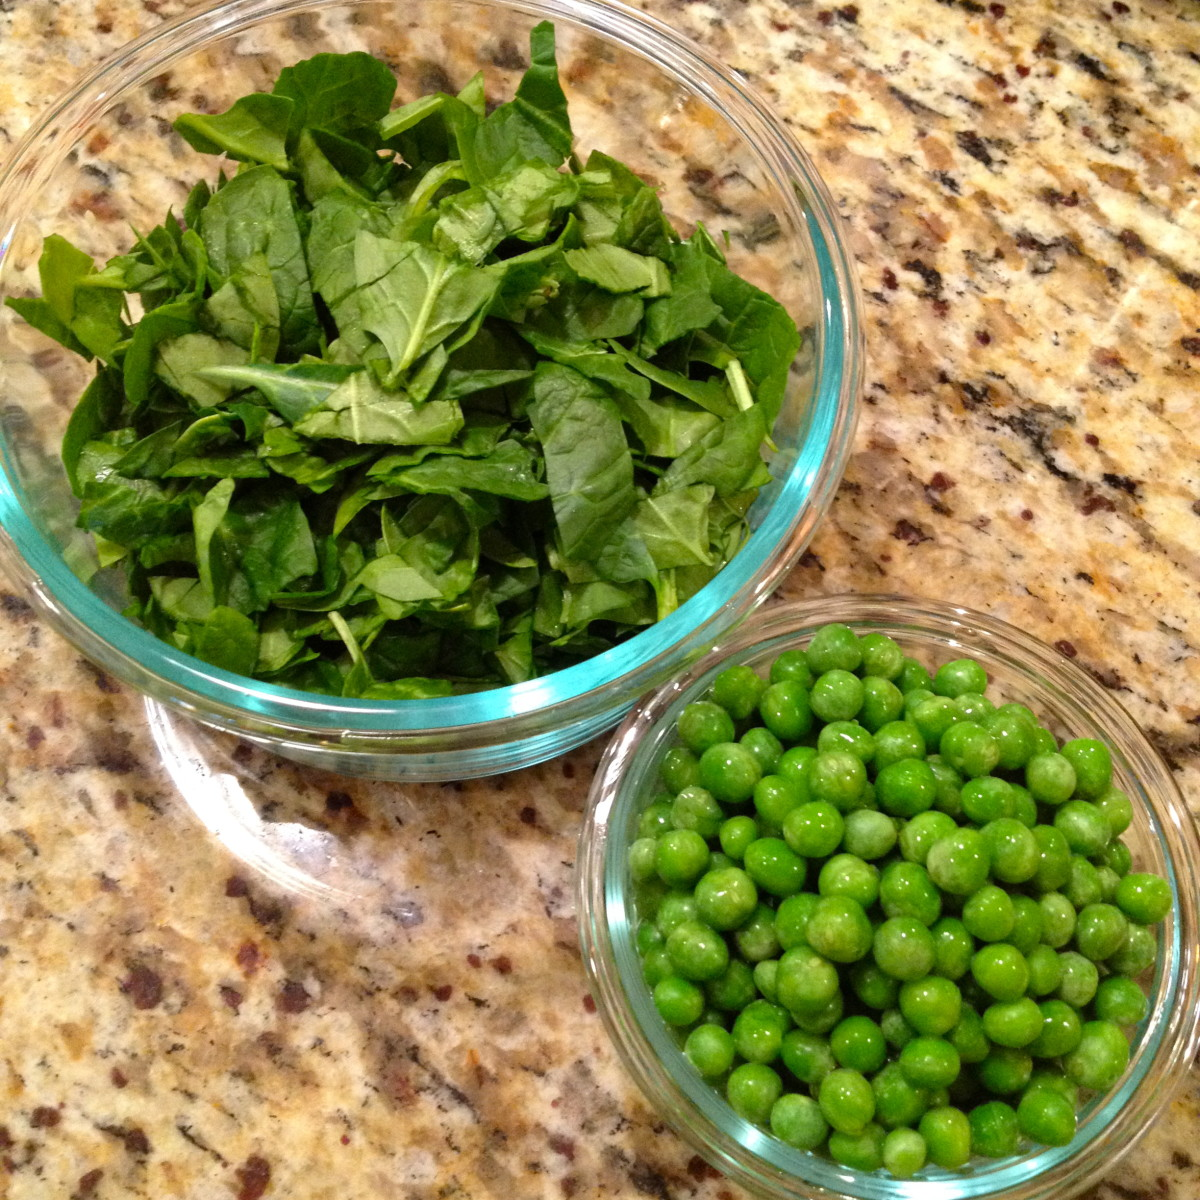 While the recipe cooks in the slow cooker, prepare spinach and peas.